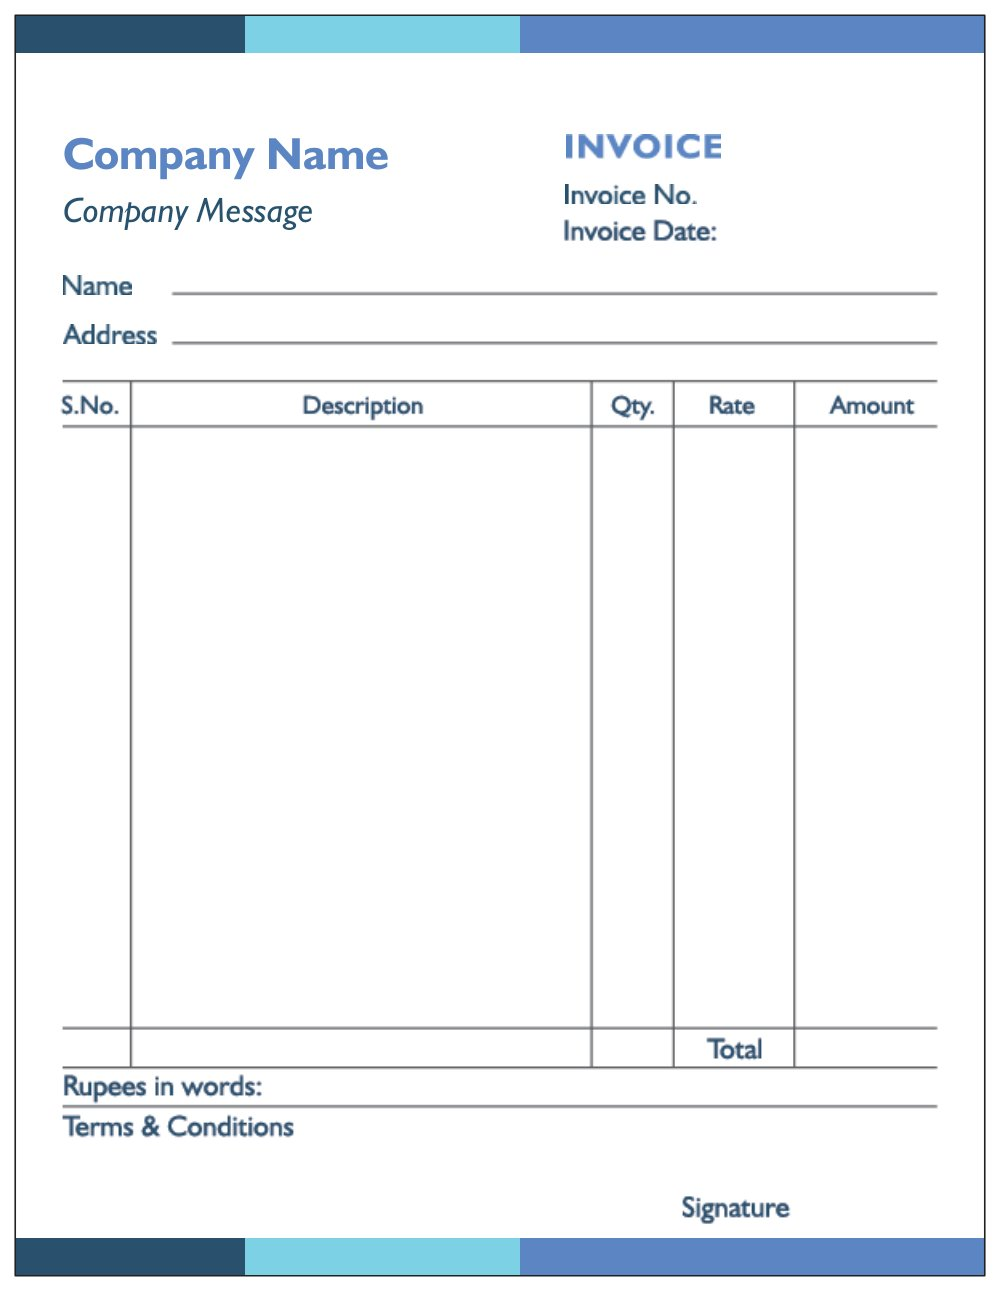 Print Custom Bill Book Receipt Books Invoice Books And Notepads With Logo At Vistaprint In Microsoft Word Invoice Template Invoice Template Word Custom Notepad